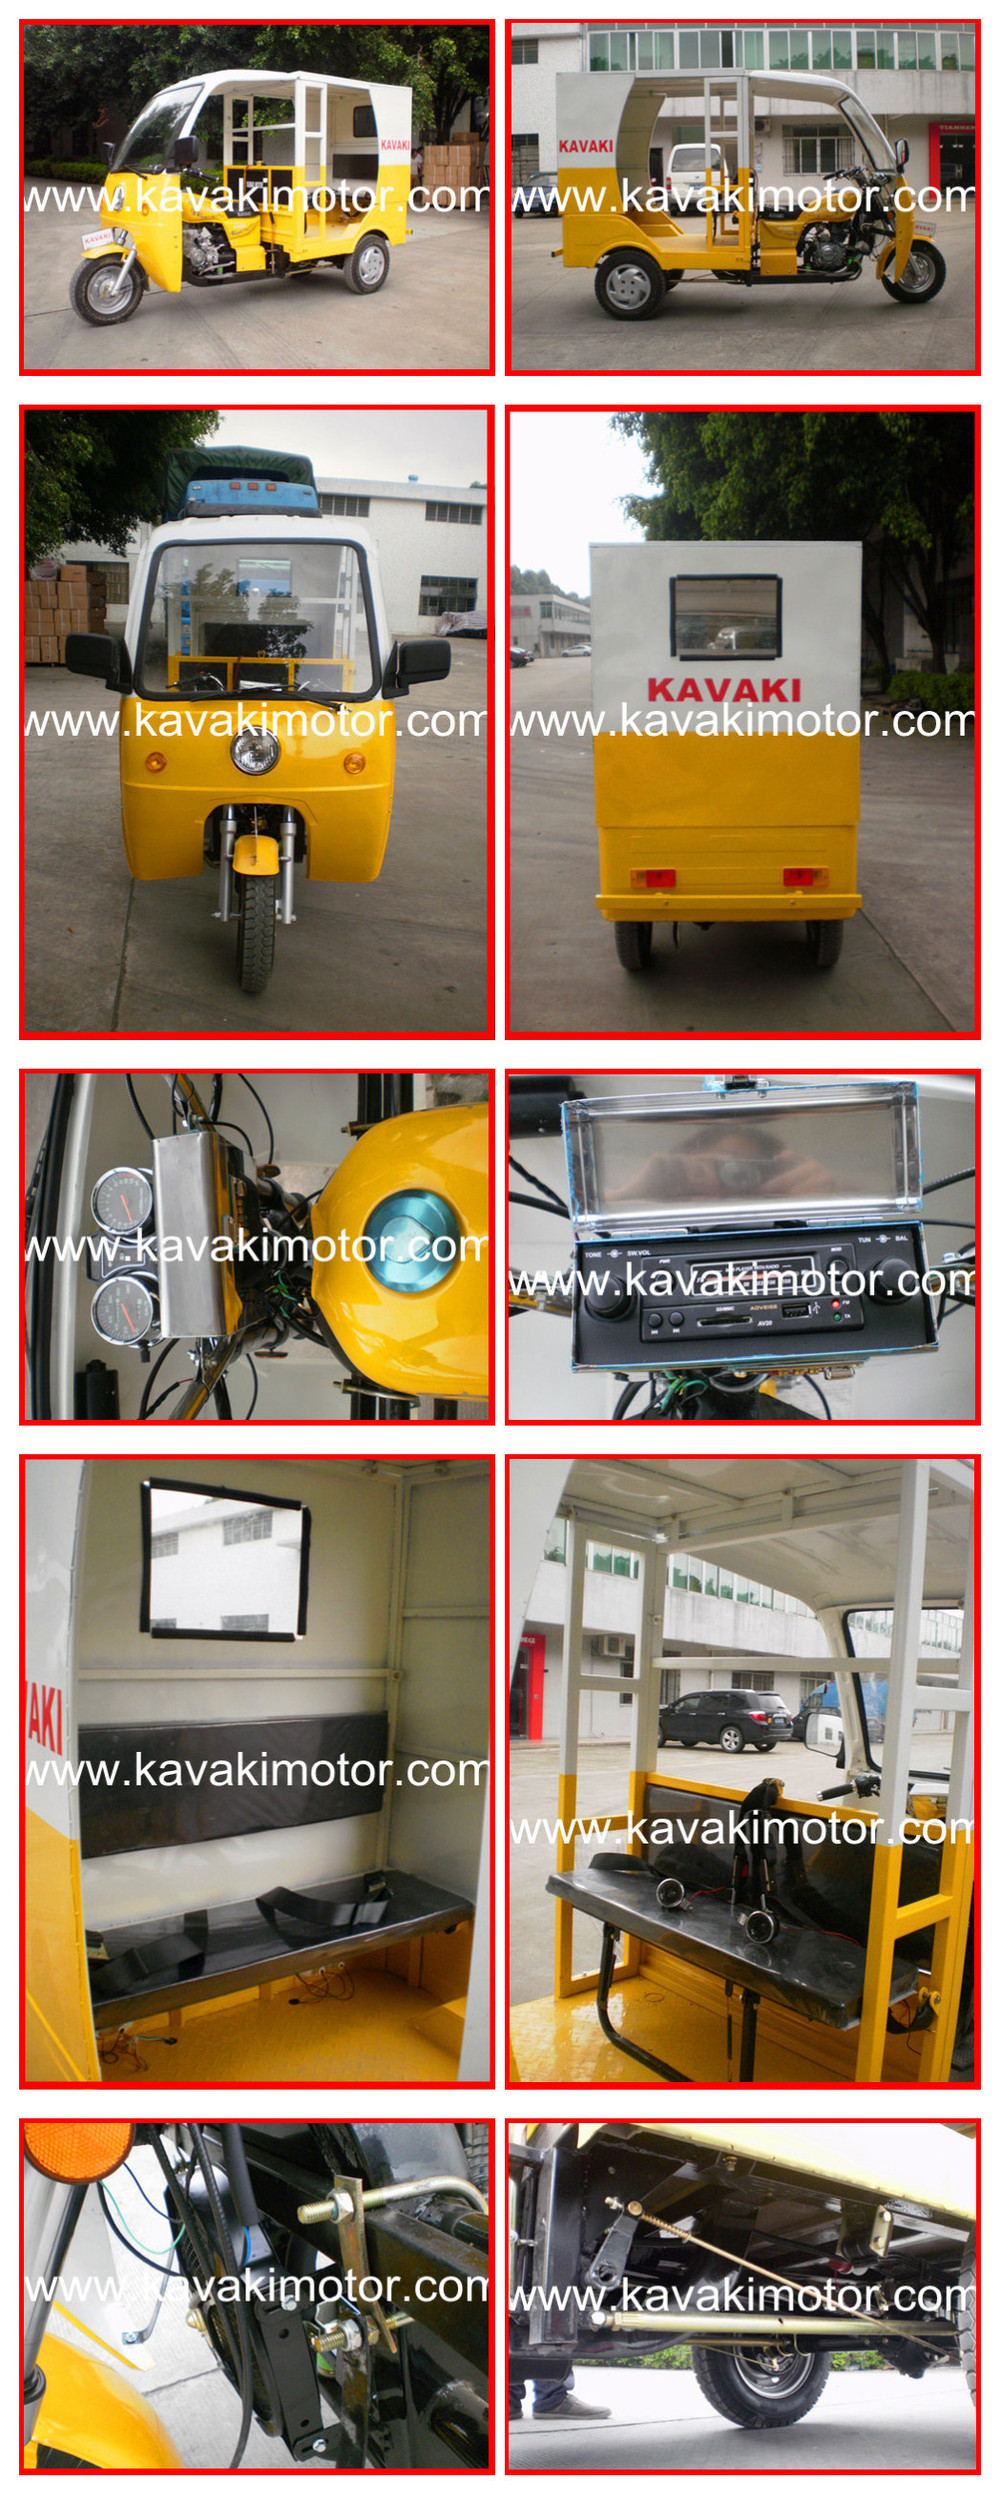 Factory Oulet Petrol Powered Similar As Indian Bajaj Auto Rickshaw Passenger Tricycle Taxi / Three Wheel Tourist Tricycle